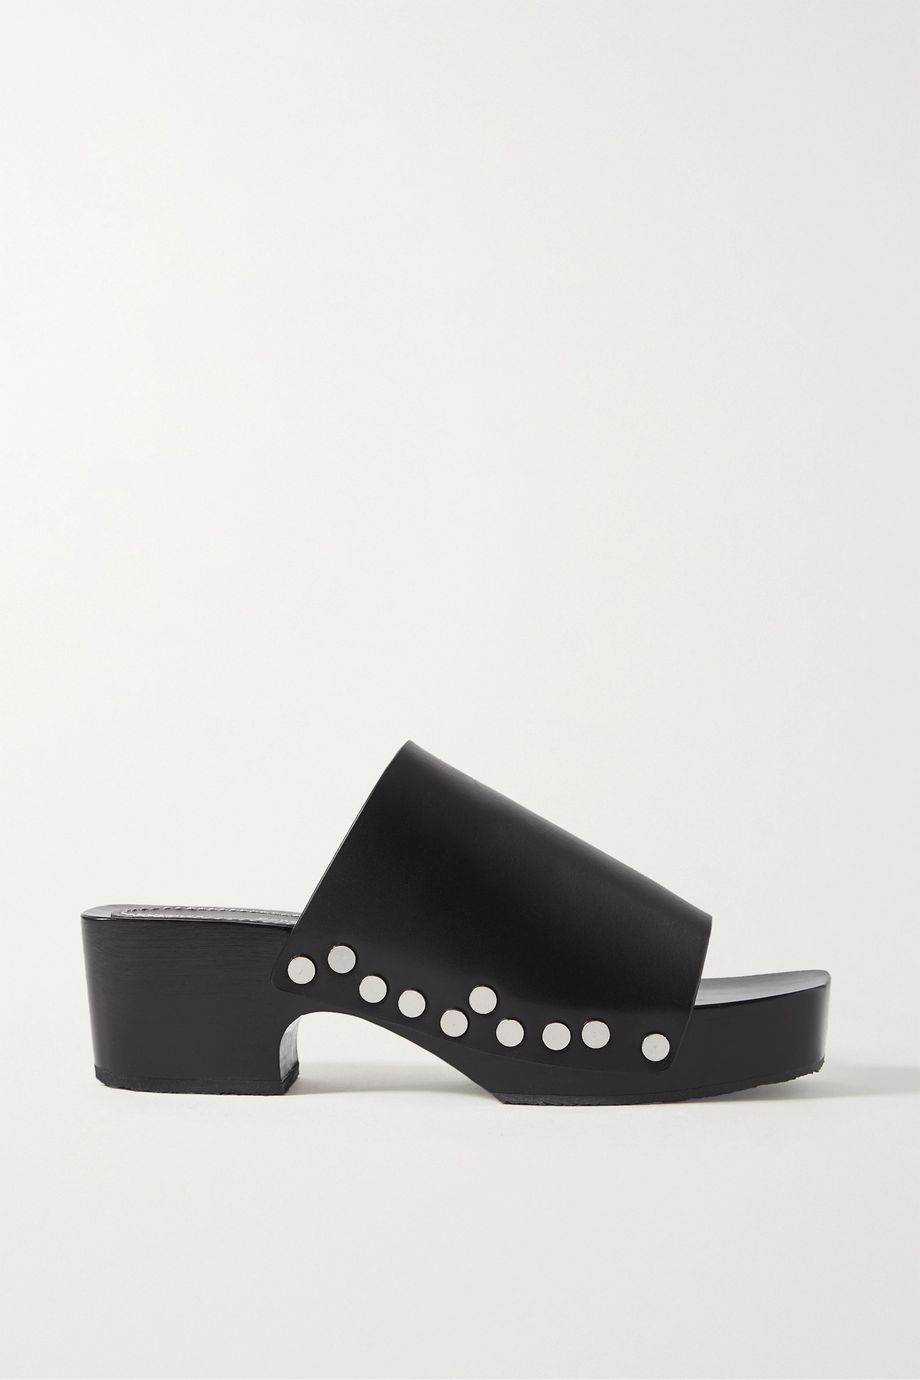 Proenza Schouler Studded leather platform mules